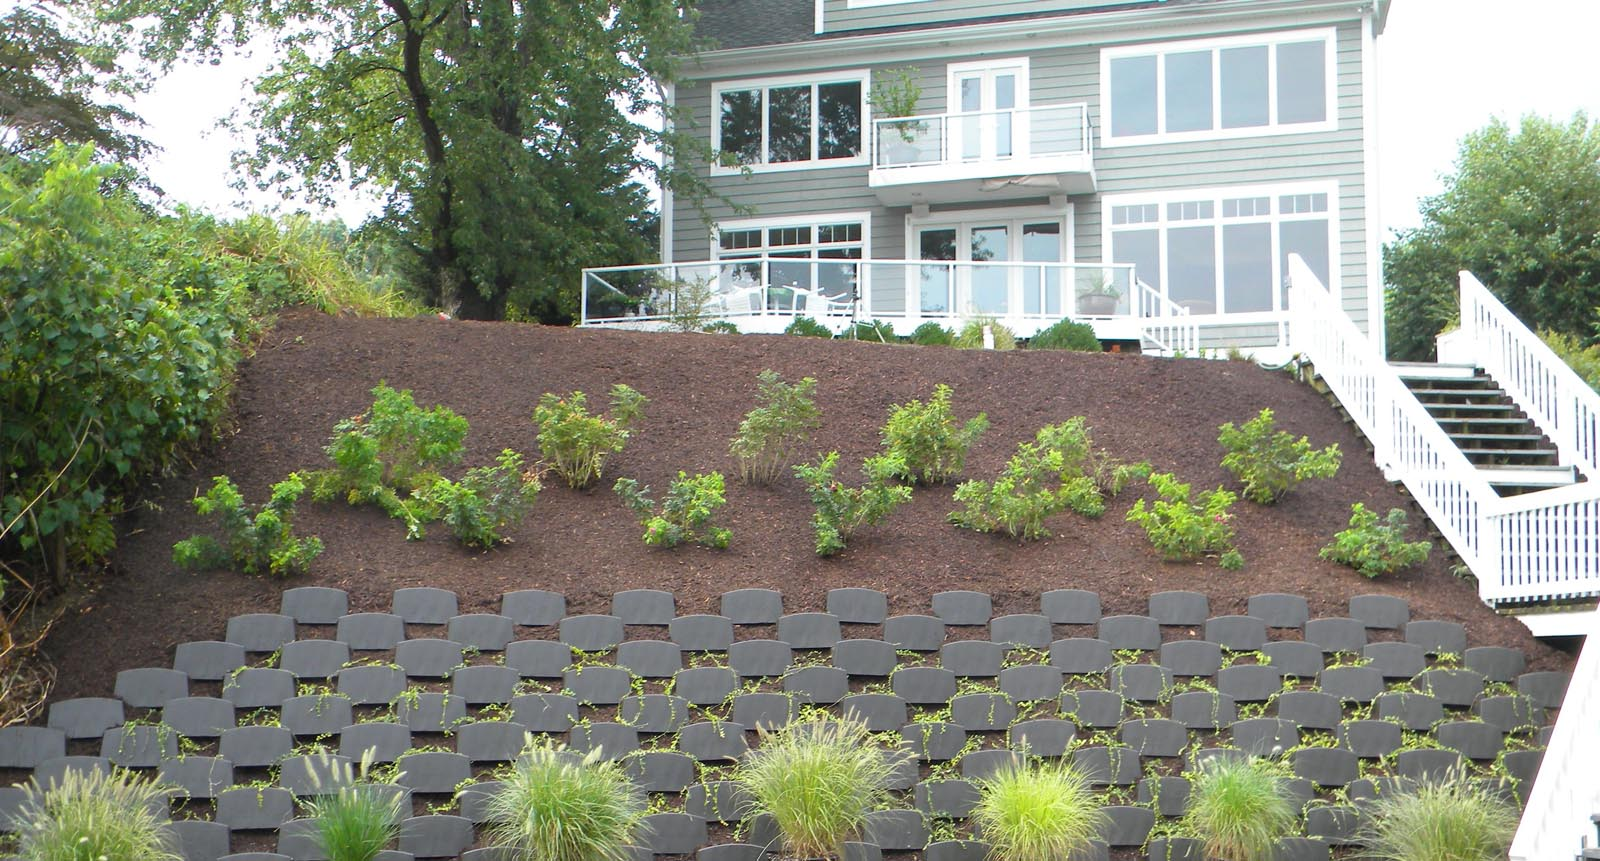 Ecoscaping smart slope planted retaining wall ciminelli s landscape services inc